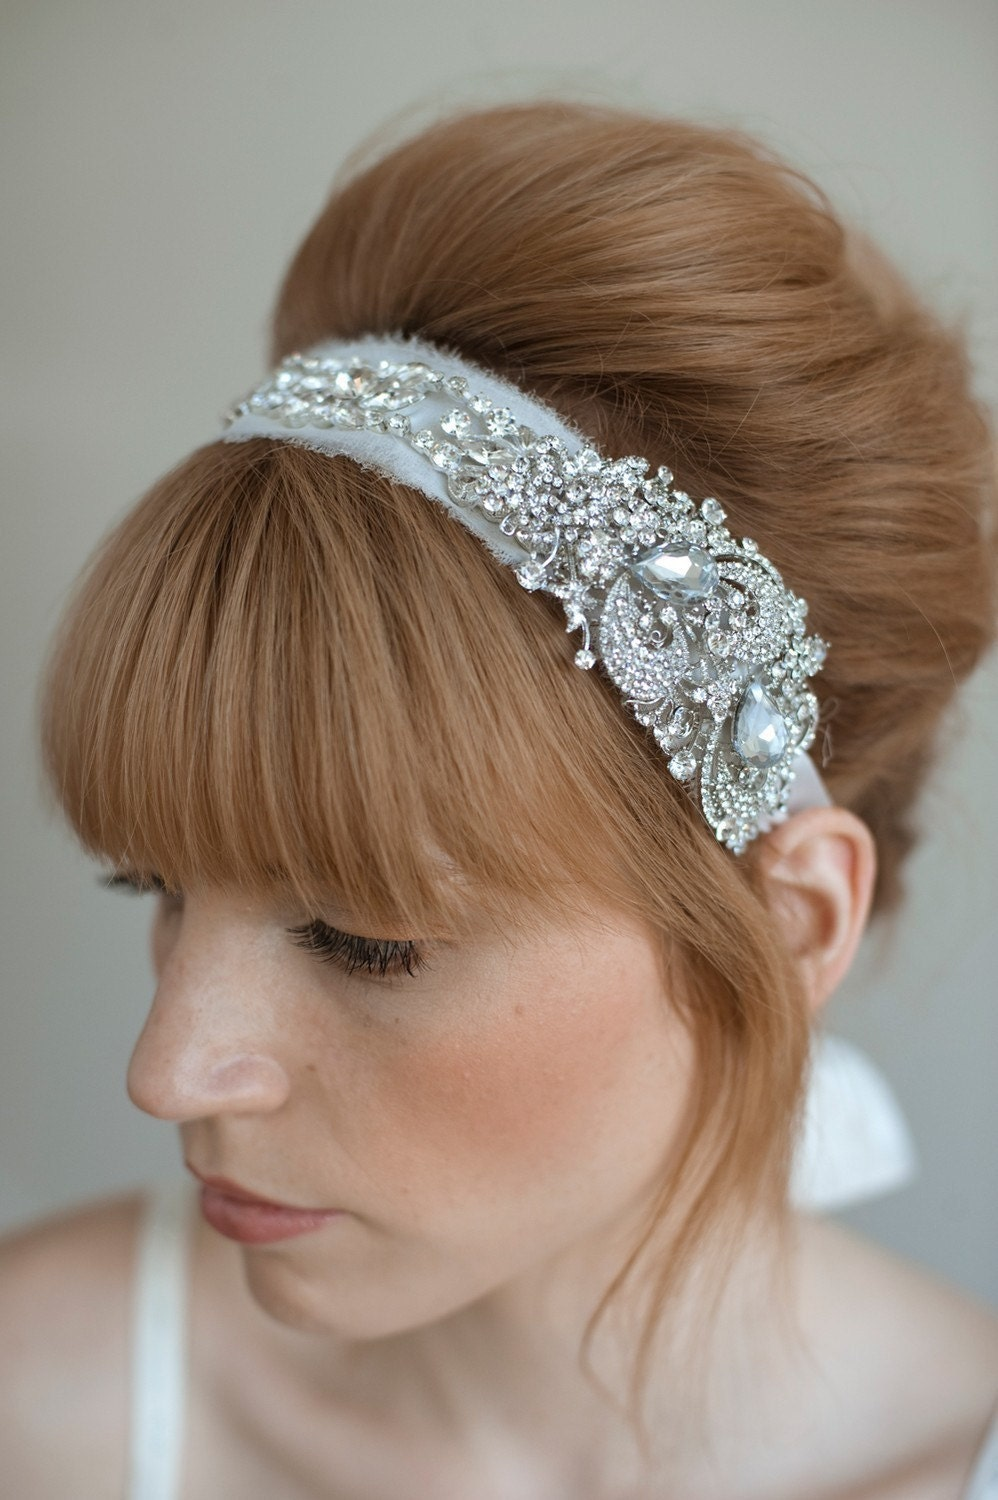 Rhinestone adorned silk chiffon headband - Style 011 - Made to Order